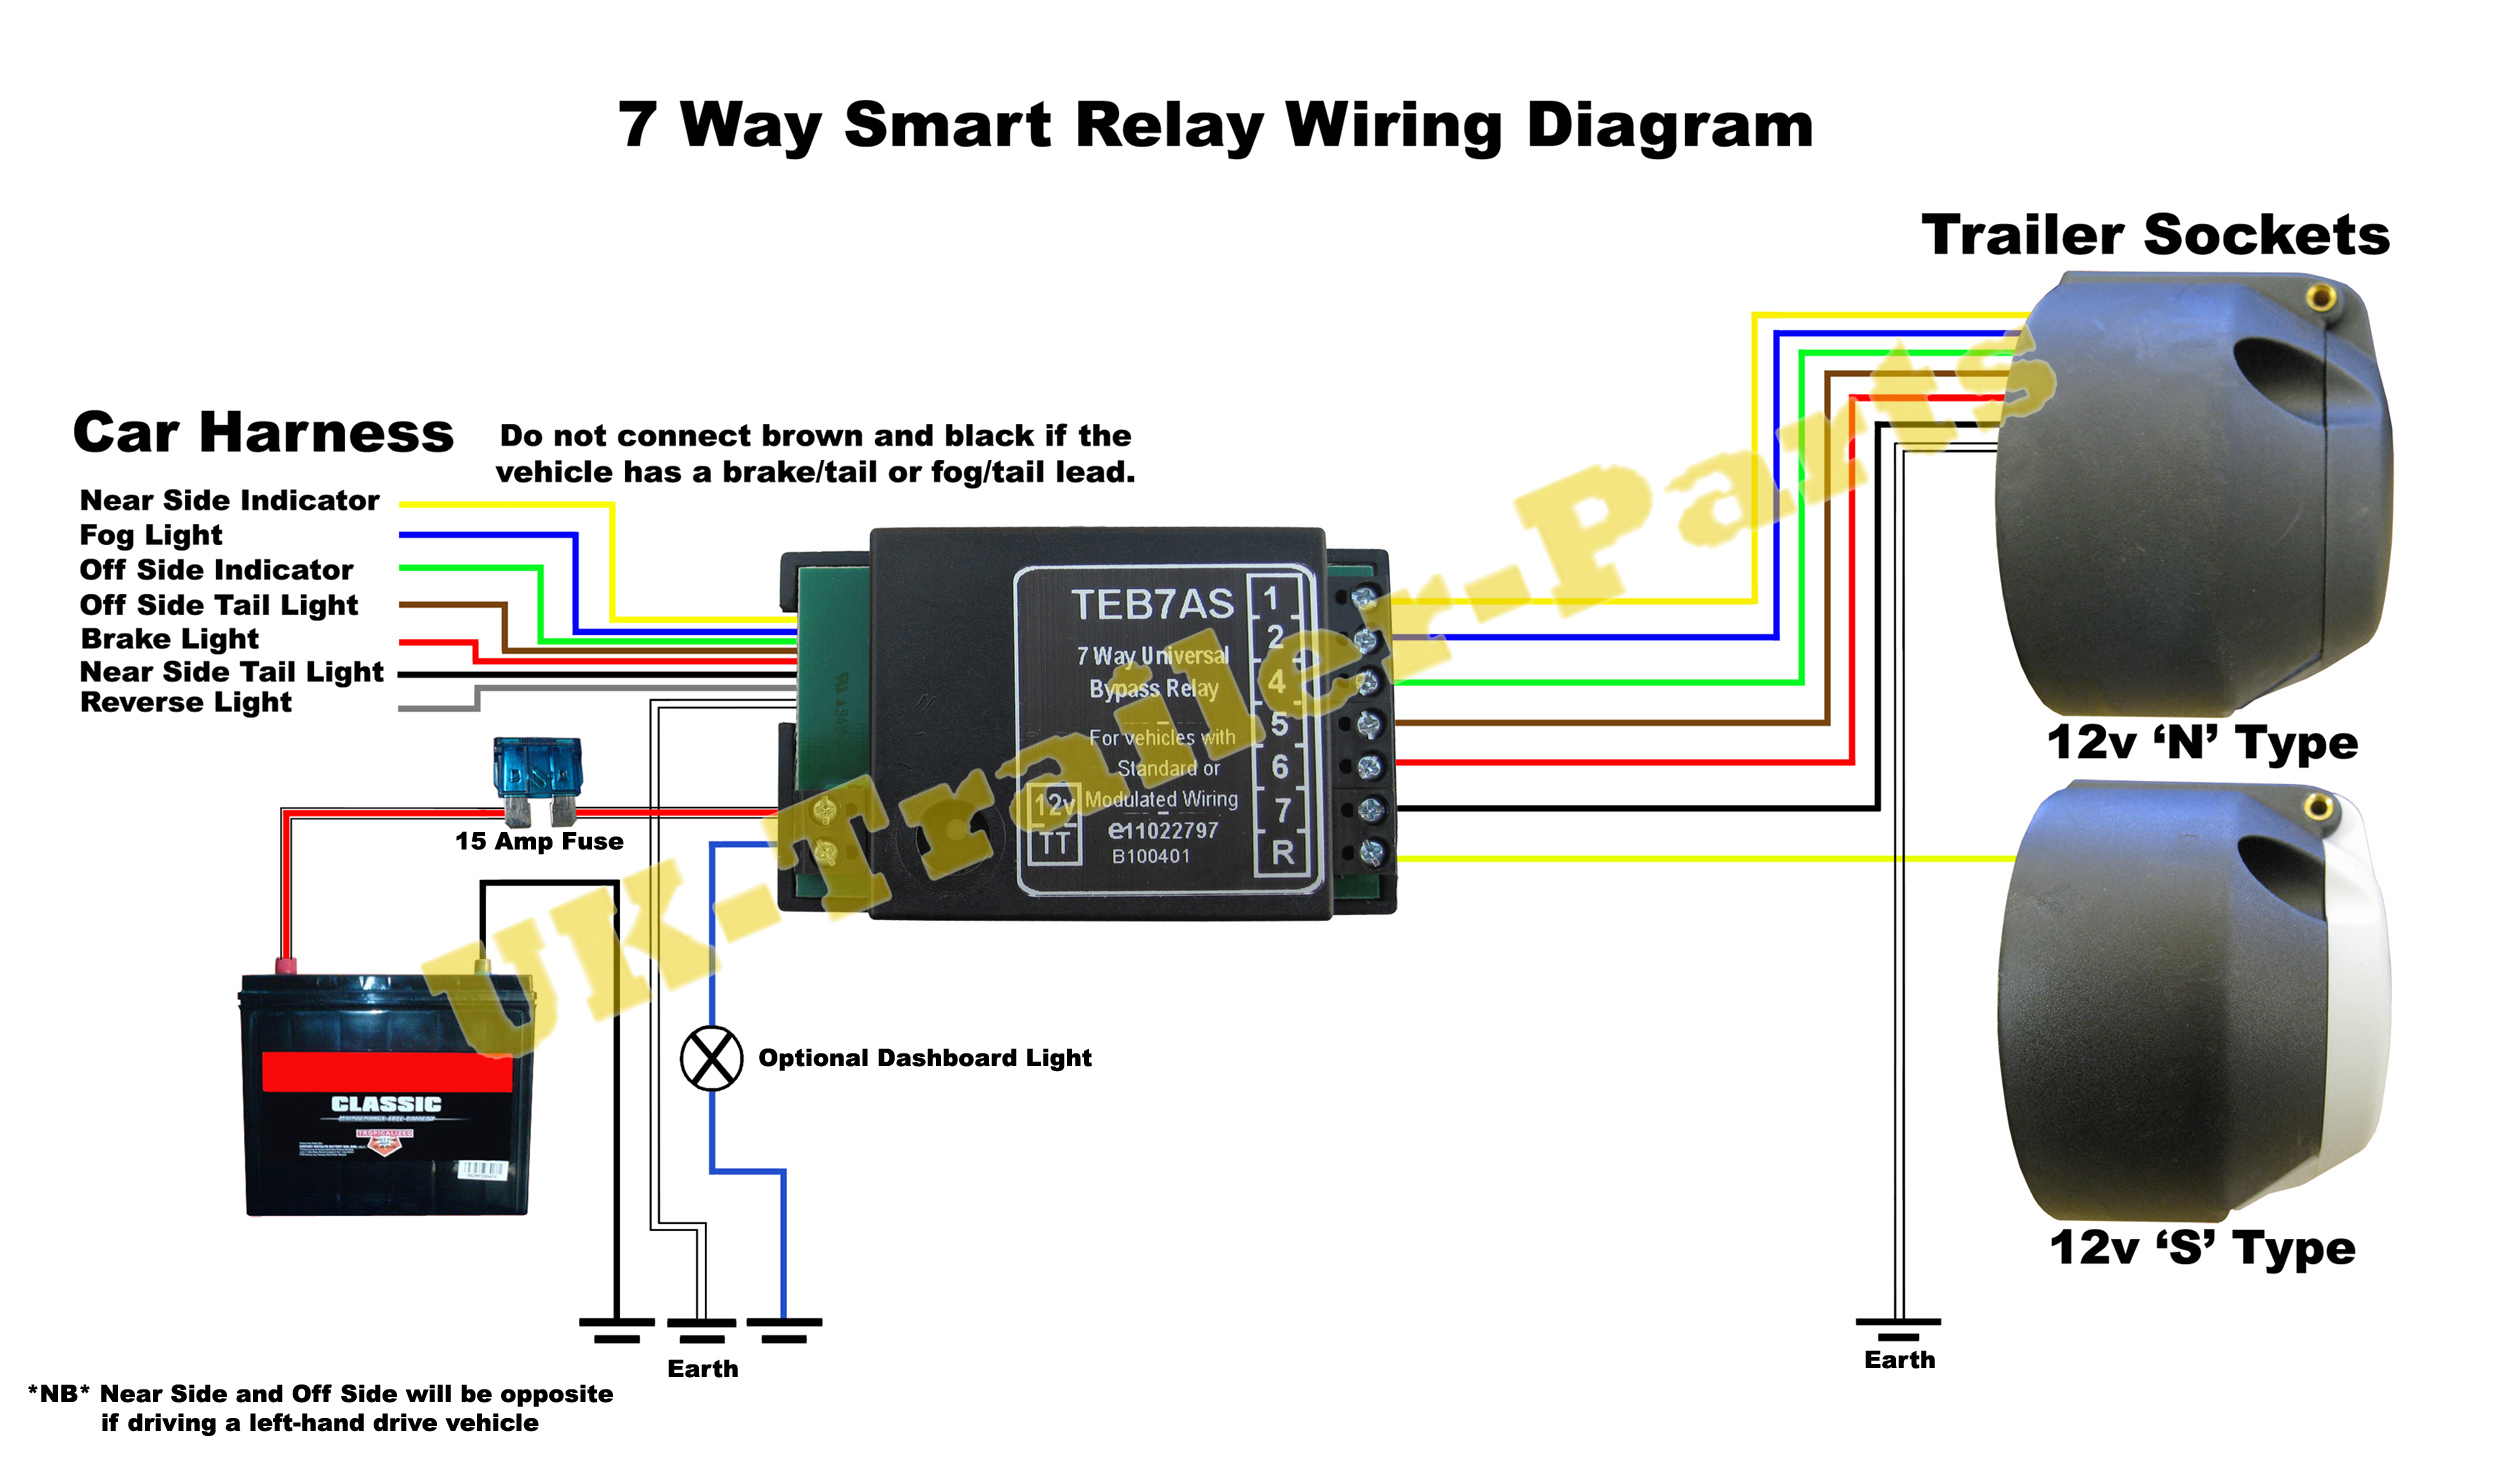 Smart Relay Wiring Diagram on Vauxhall Zafira B Fuse Box Diagram